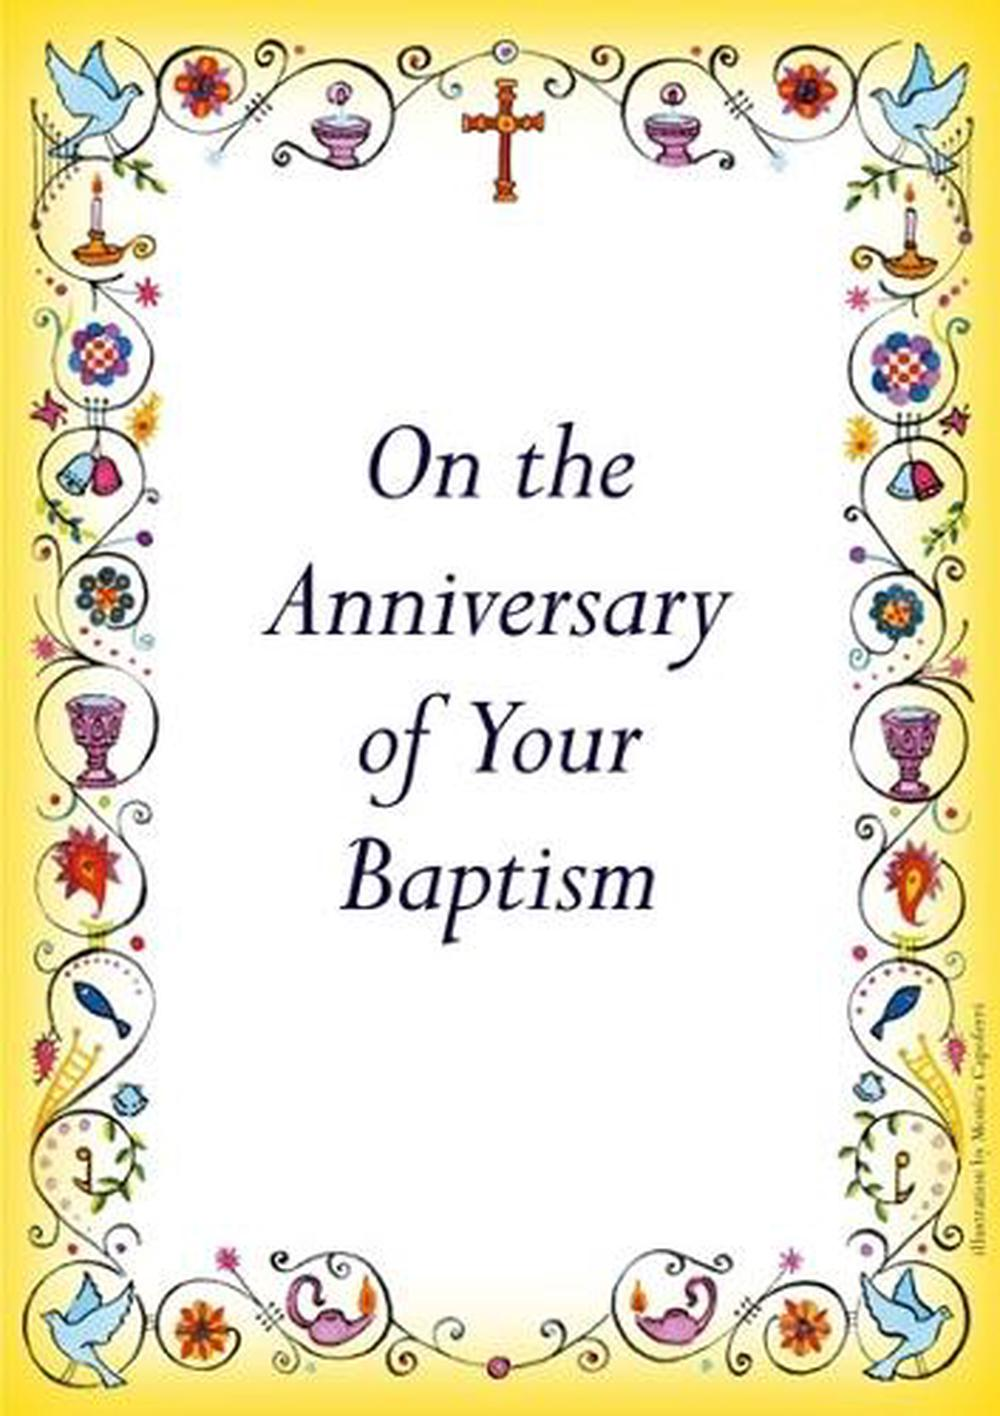 Anniversary of Baptism Card Free Shipping!